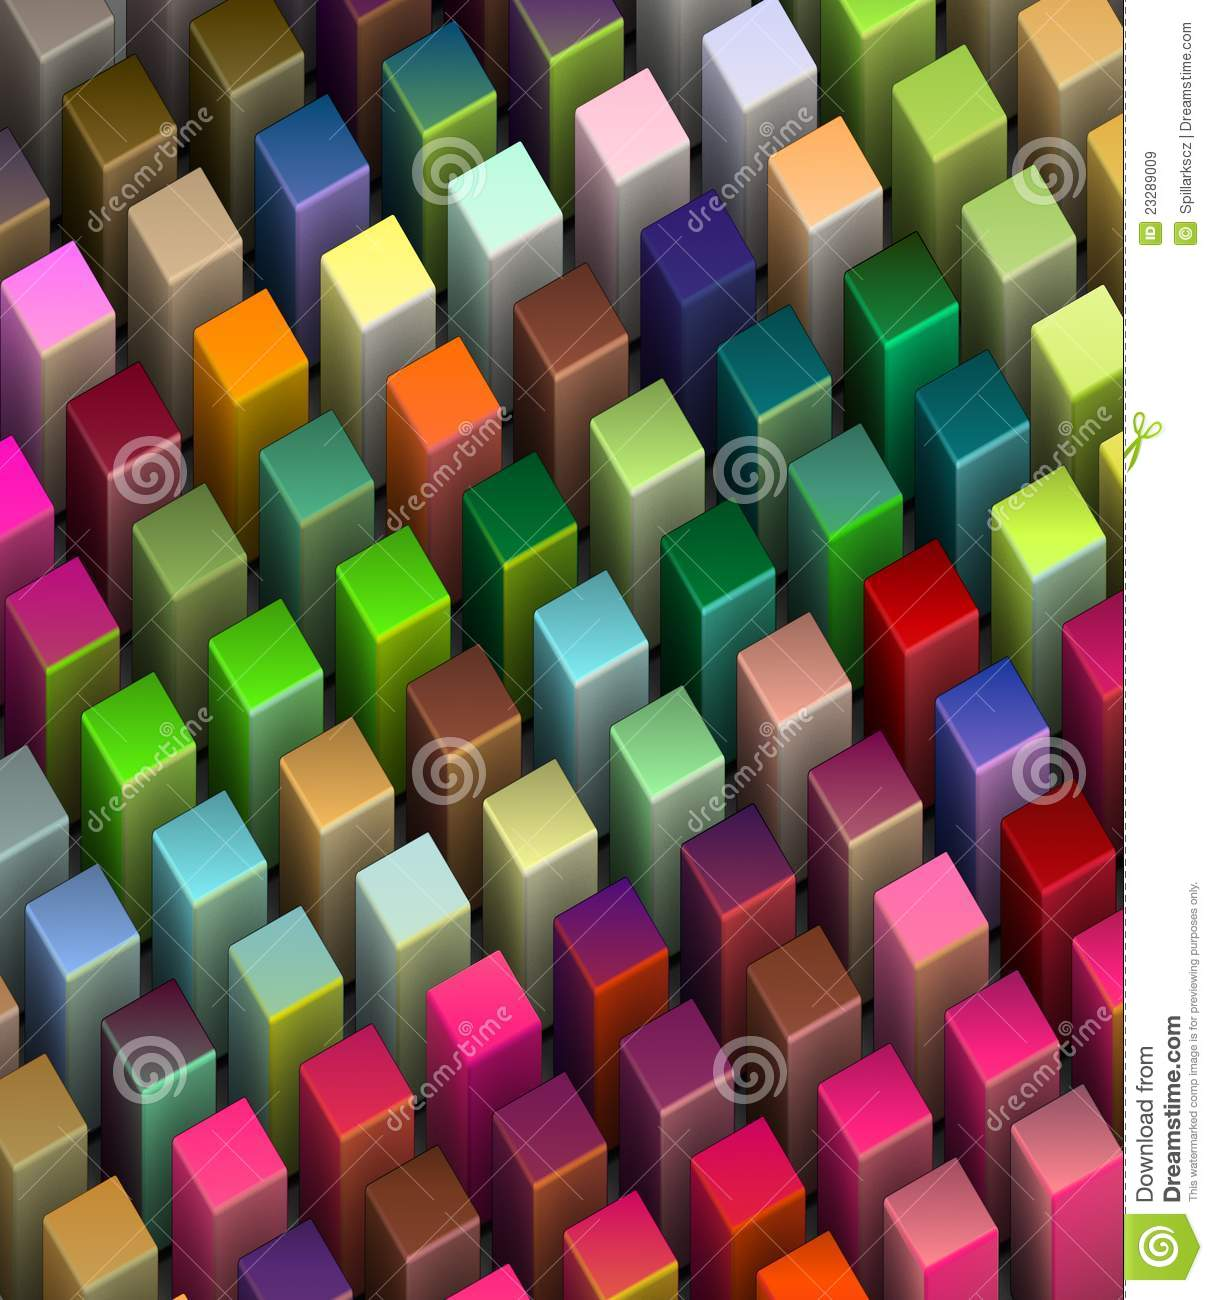 Painter And Decorator Prices >> Frog View 3d Beveled Cubes In Bright Colors Royalty Free Stock Images - Image: 23289009